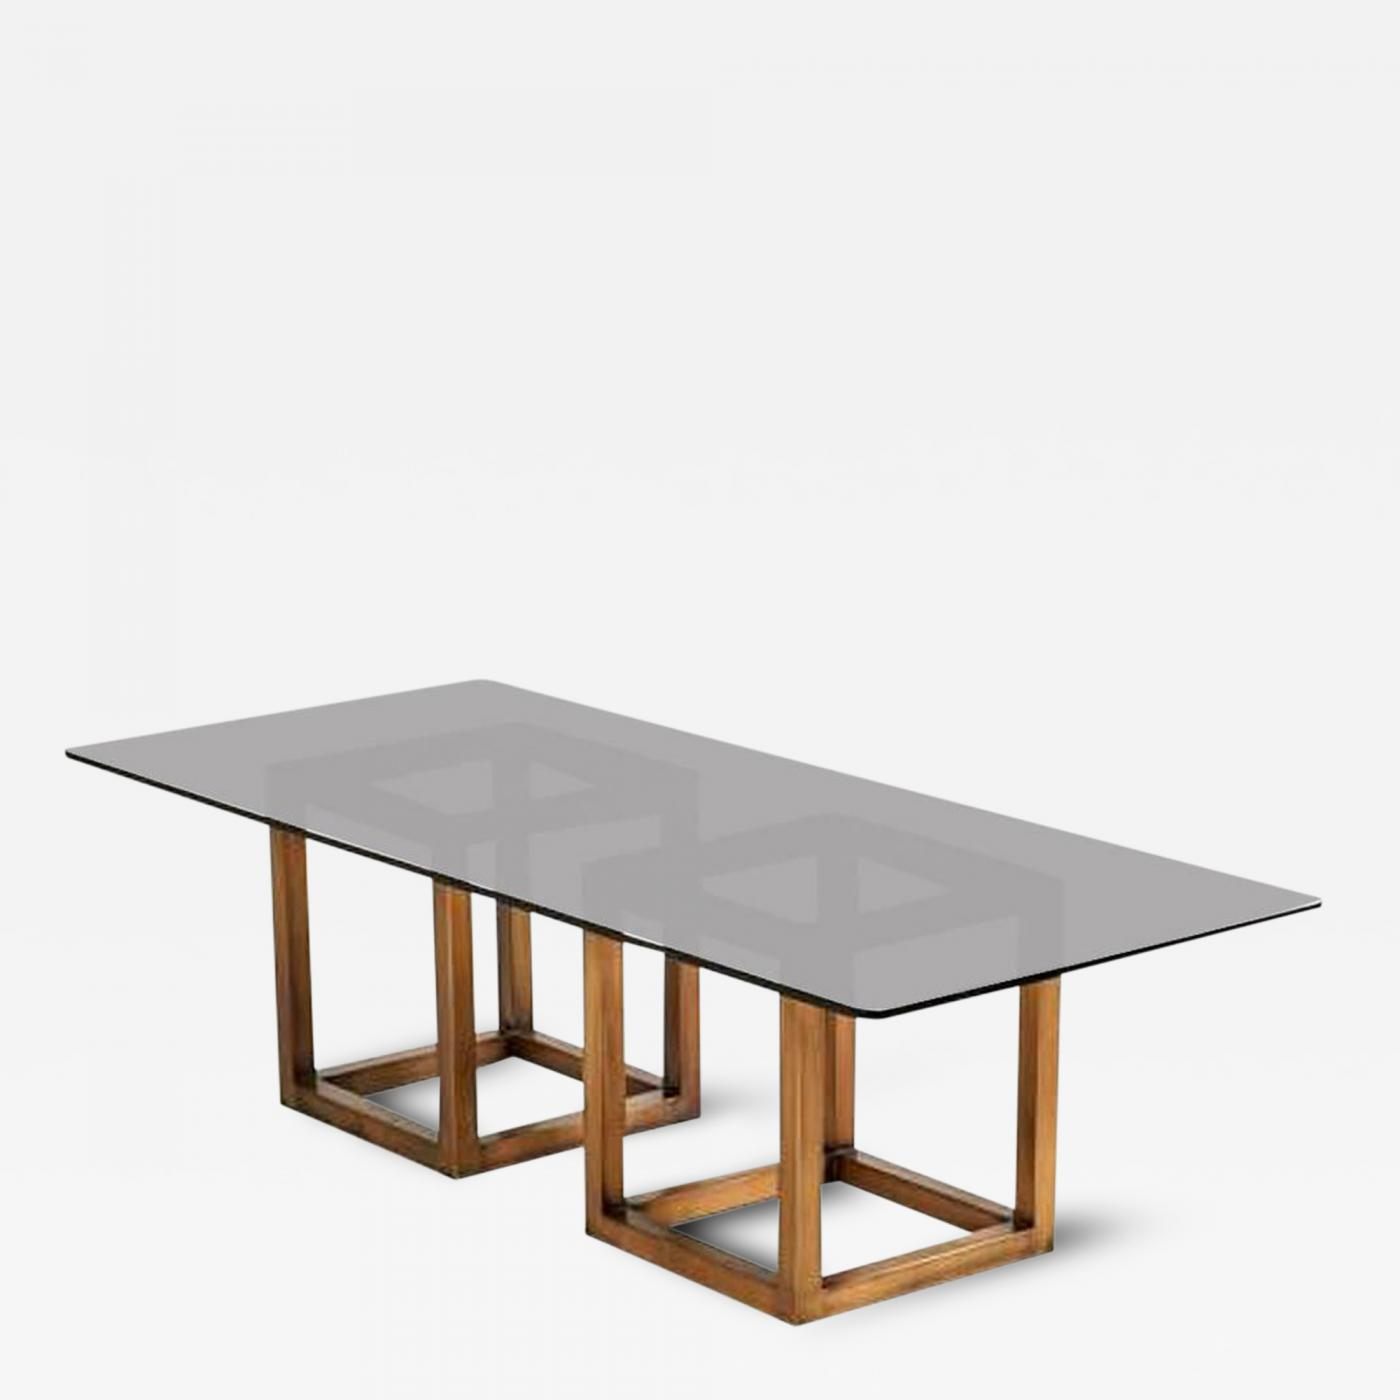 Beau ... Smoked Glass Dining Table. Click On Image To Enlarge